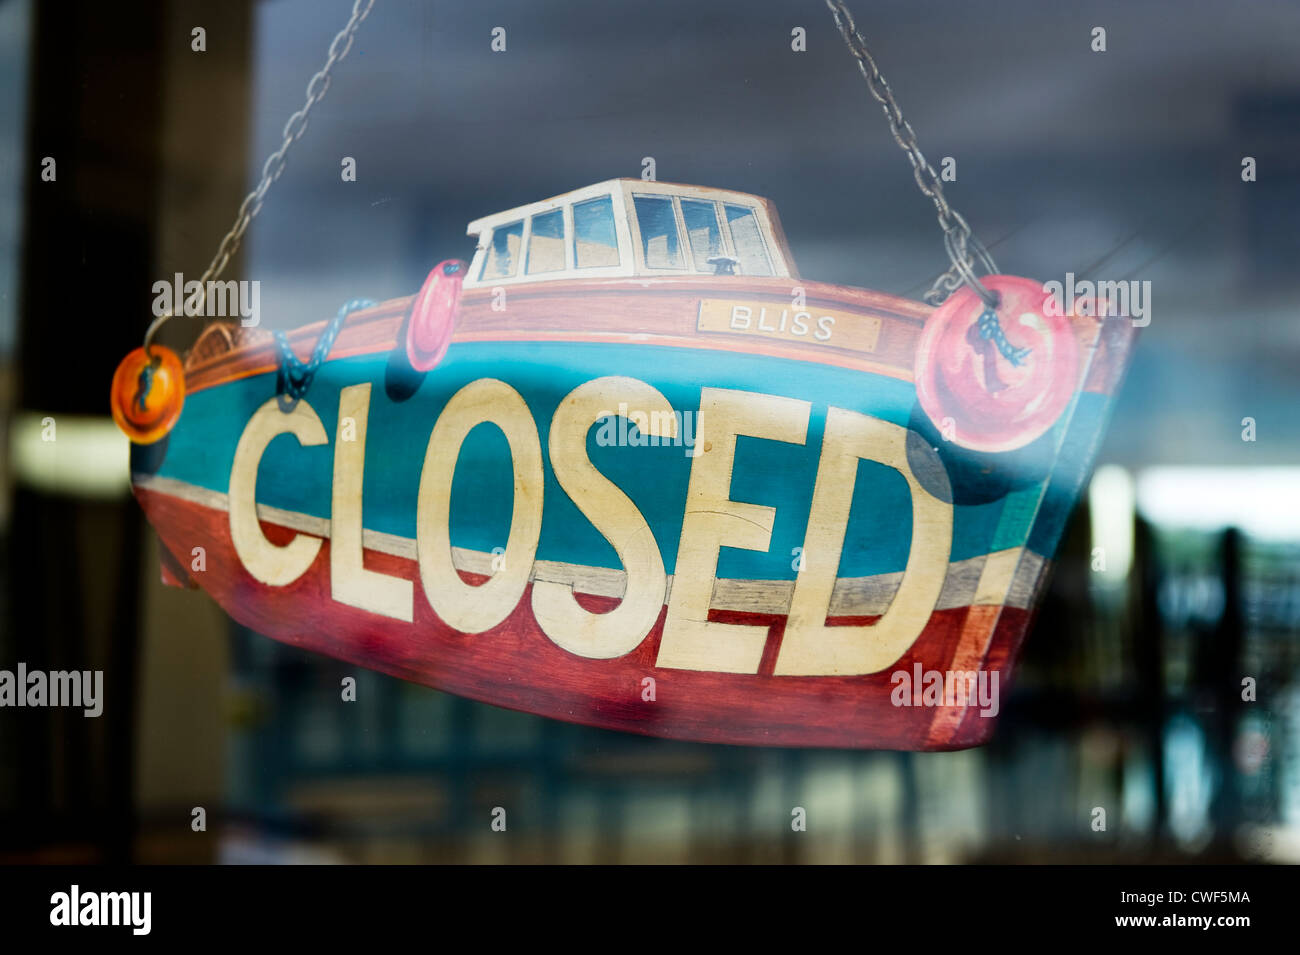 boat shaped closed sign in a shop window - Stock Image